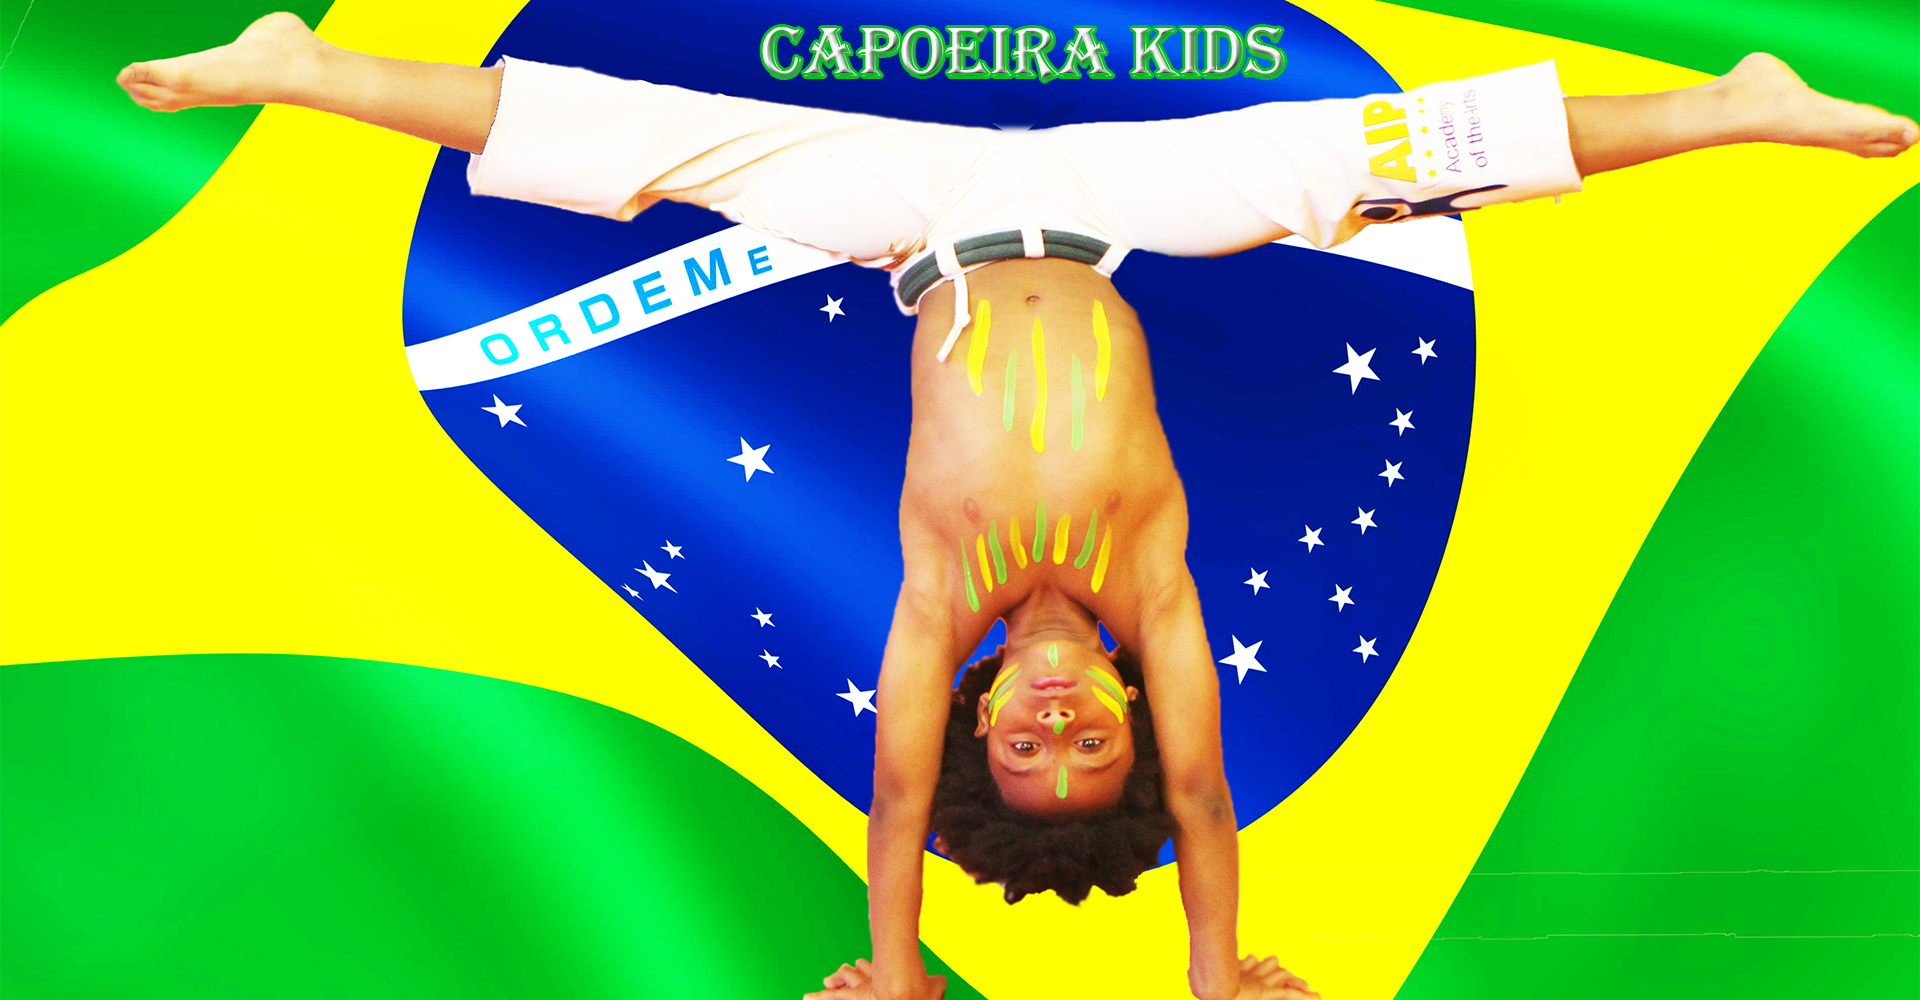 Princejahally CAPOEIRA KIDS